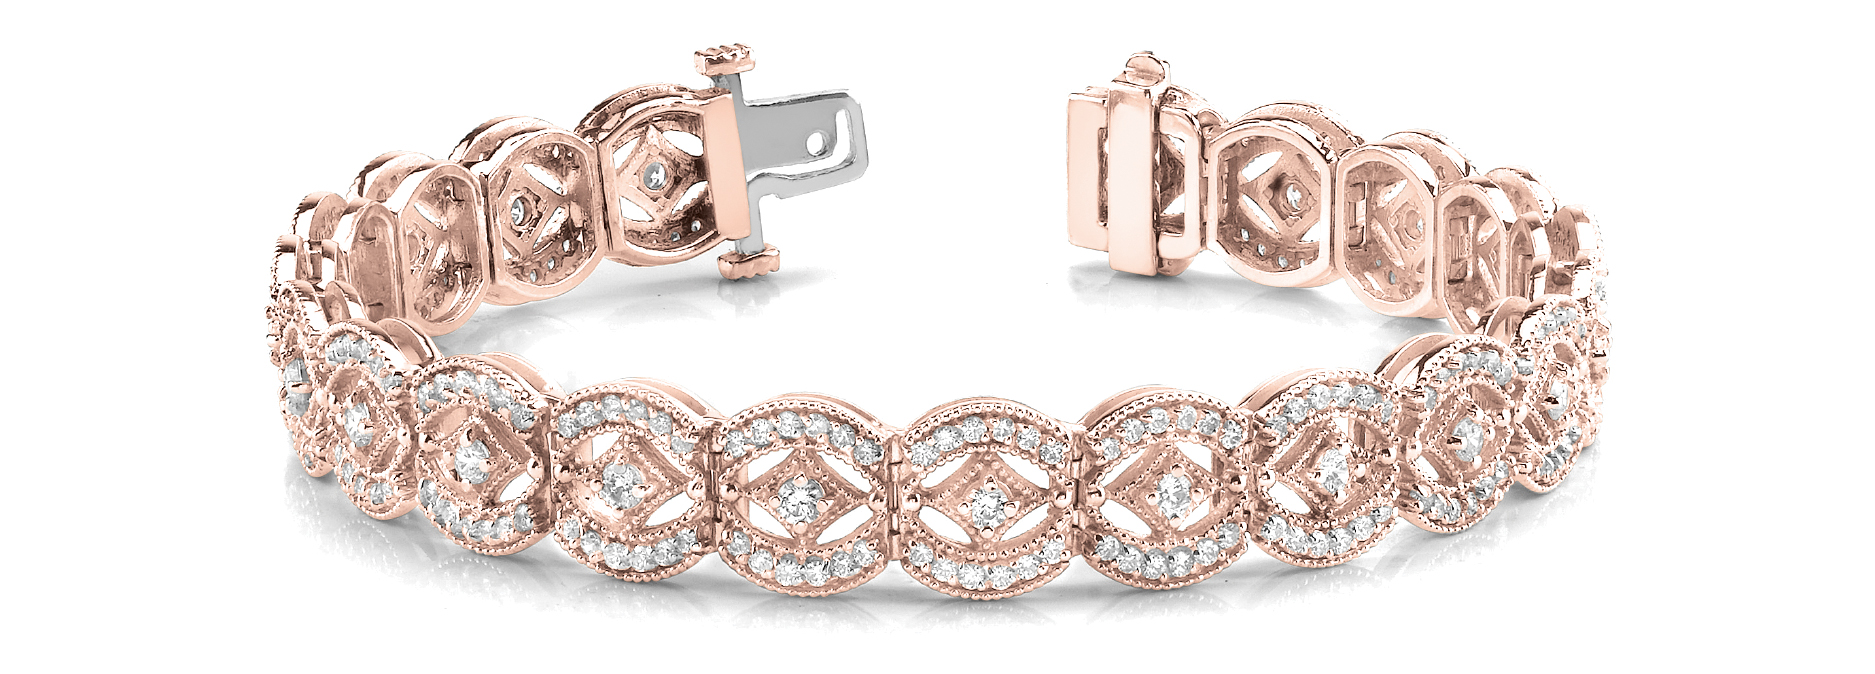 Vintage Style Argyle Round Diamond Bracelet Rose Gold 4.0 CT.